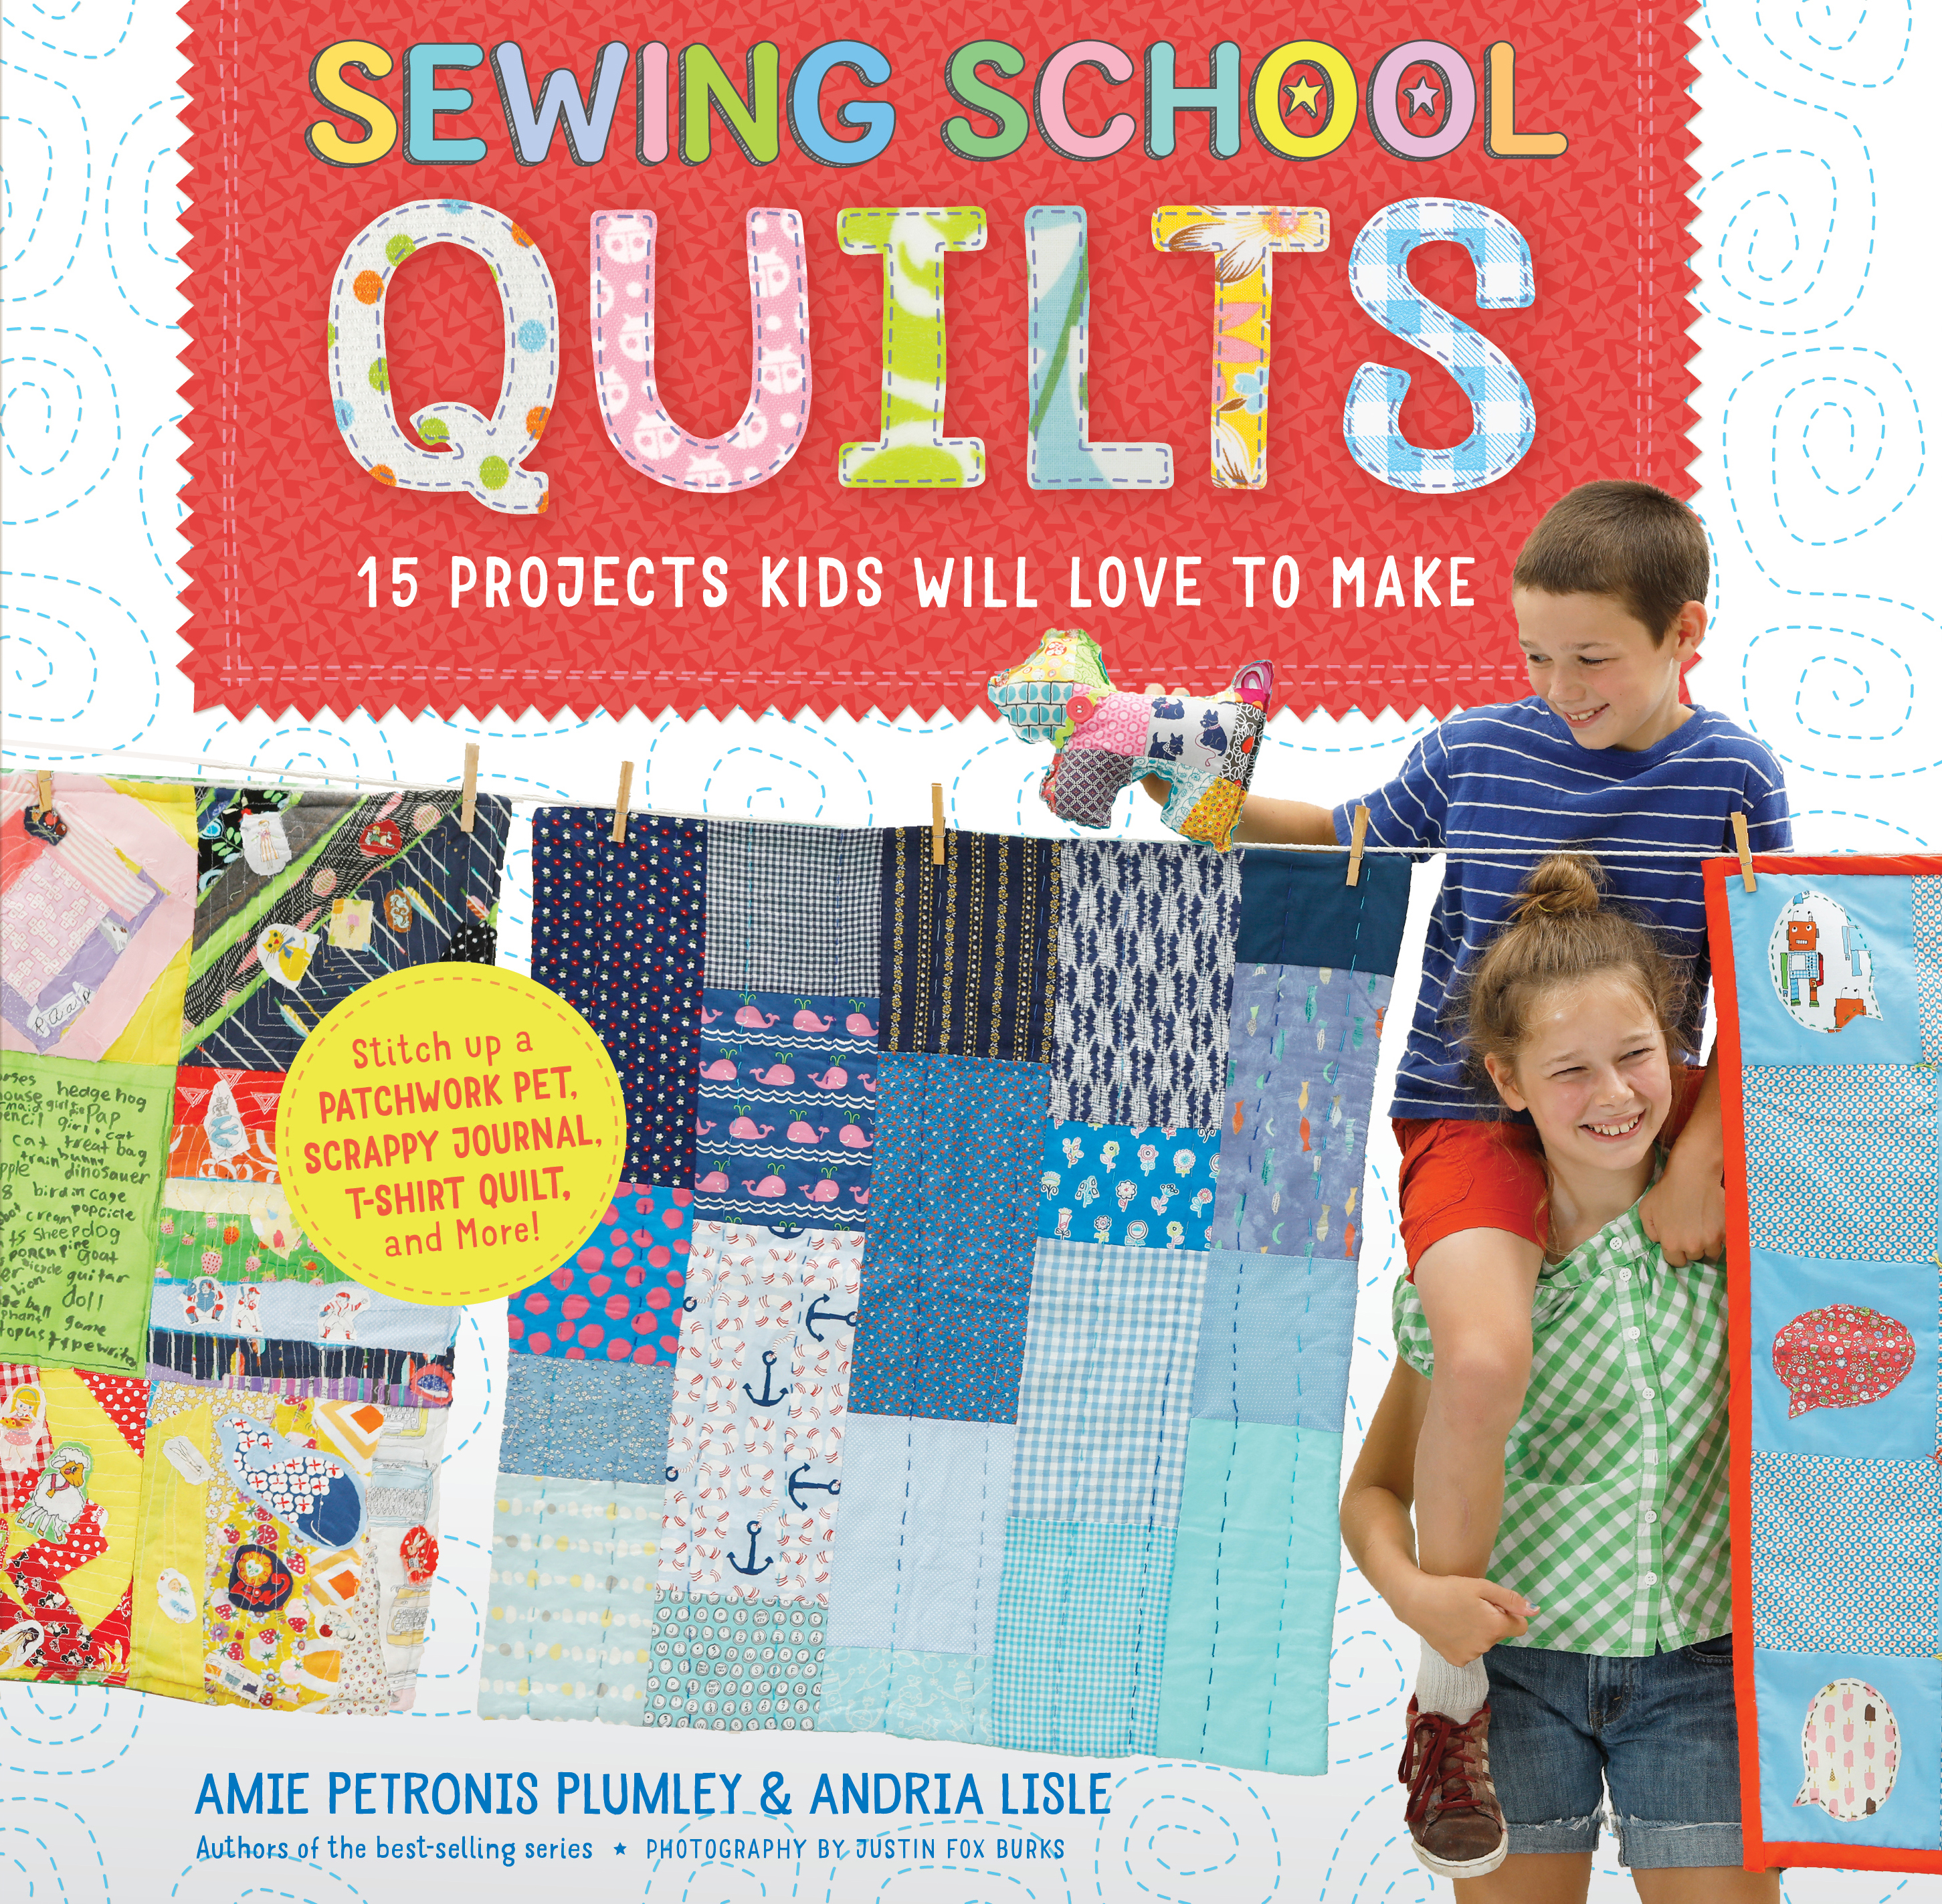 Sewing School <sup>®</sup> Quilts 15 Projects Kids Will Love to Make; Stitch Up a Patchwork Pet, Scrappy Journal, T-Shirt Quilt, and More - Amie Petronis Plumley